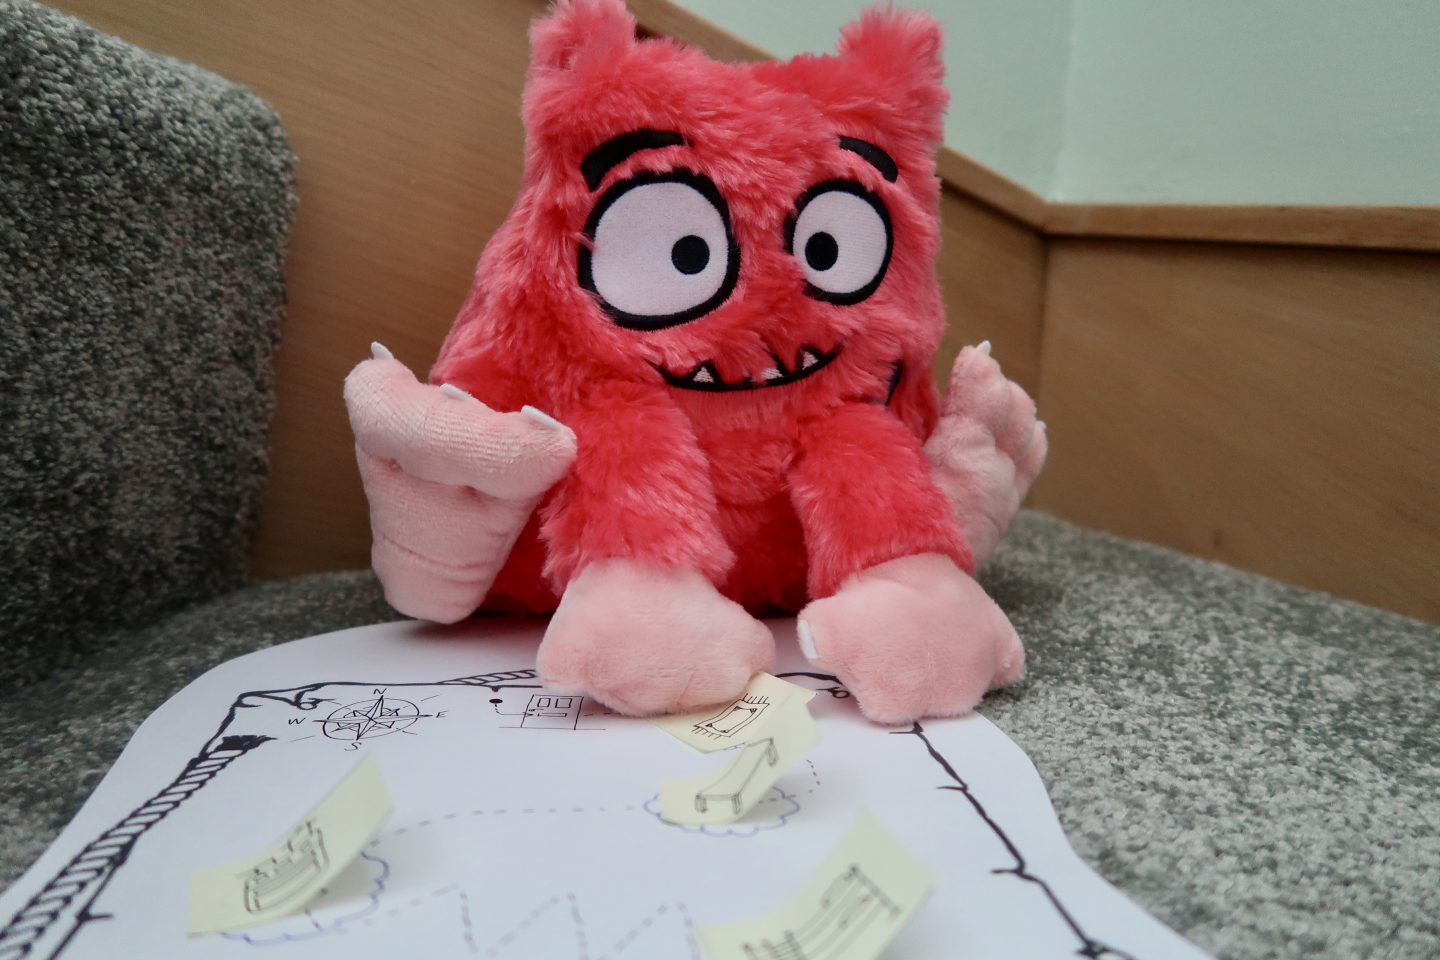 A Love Monster toy sitting with his hands on a treasure map